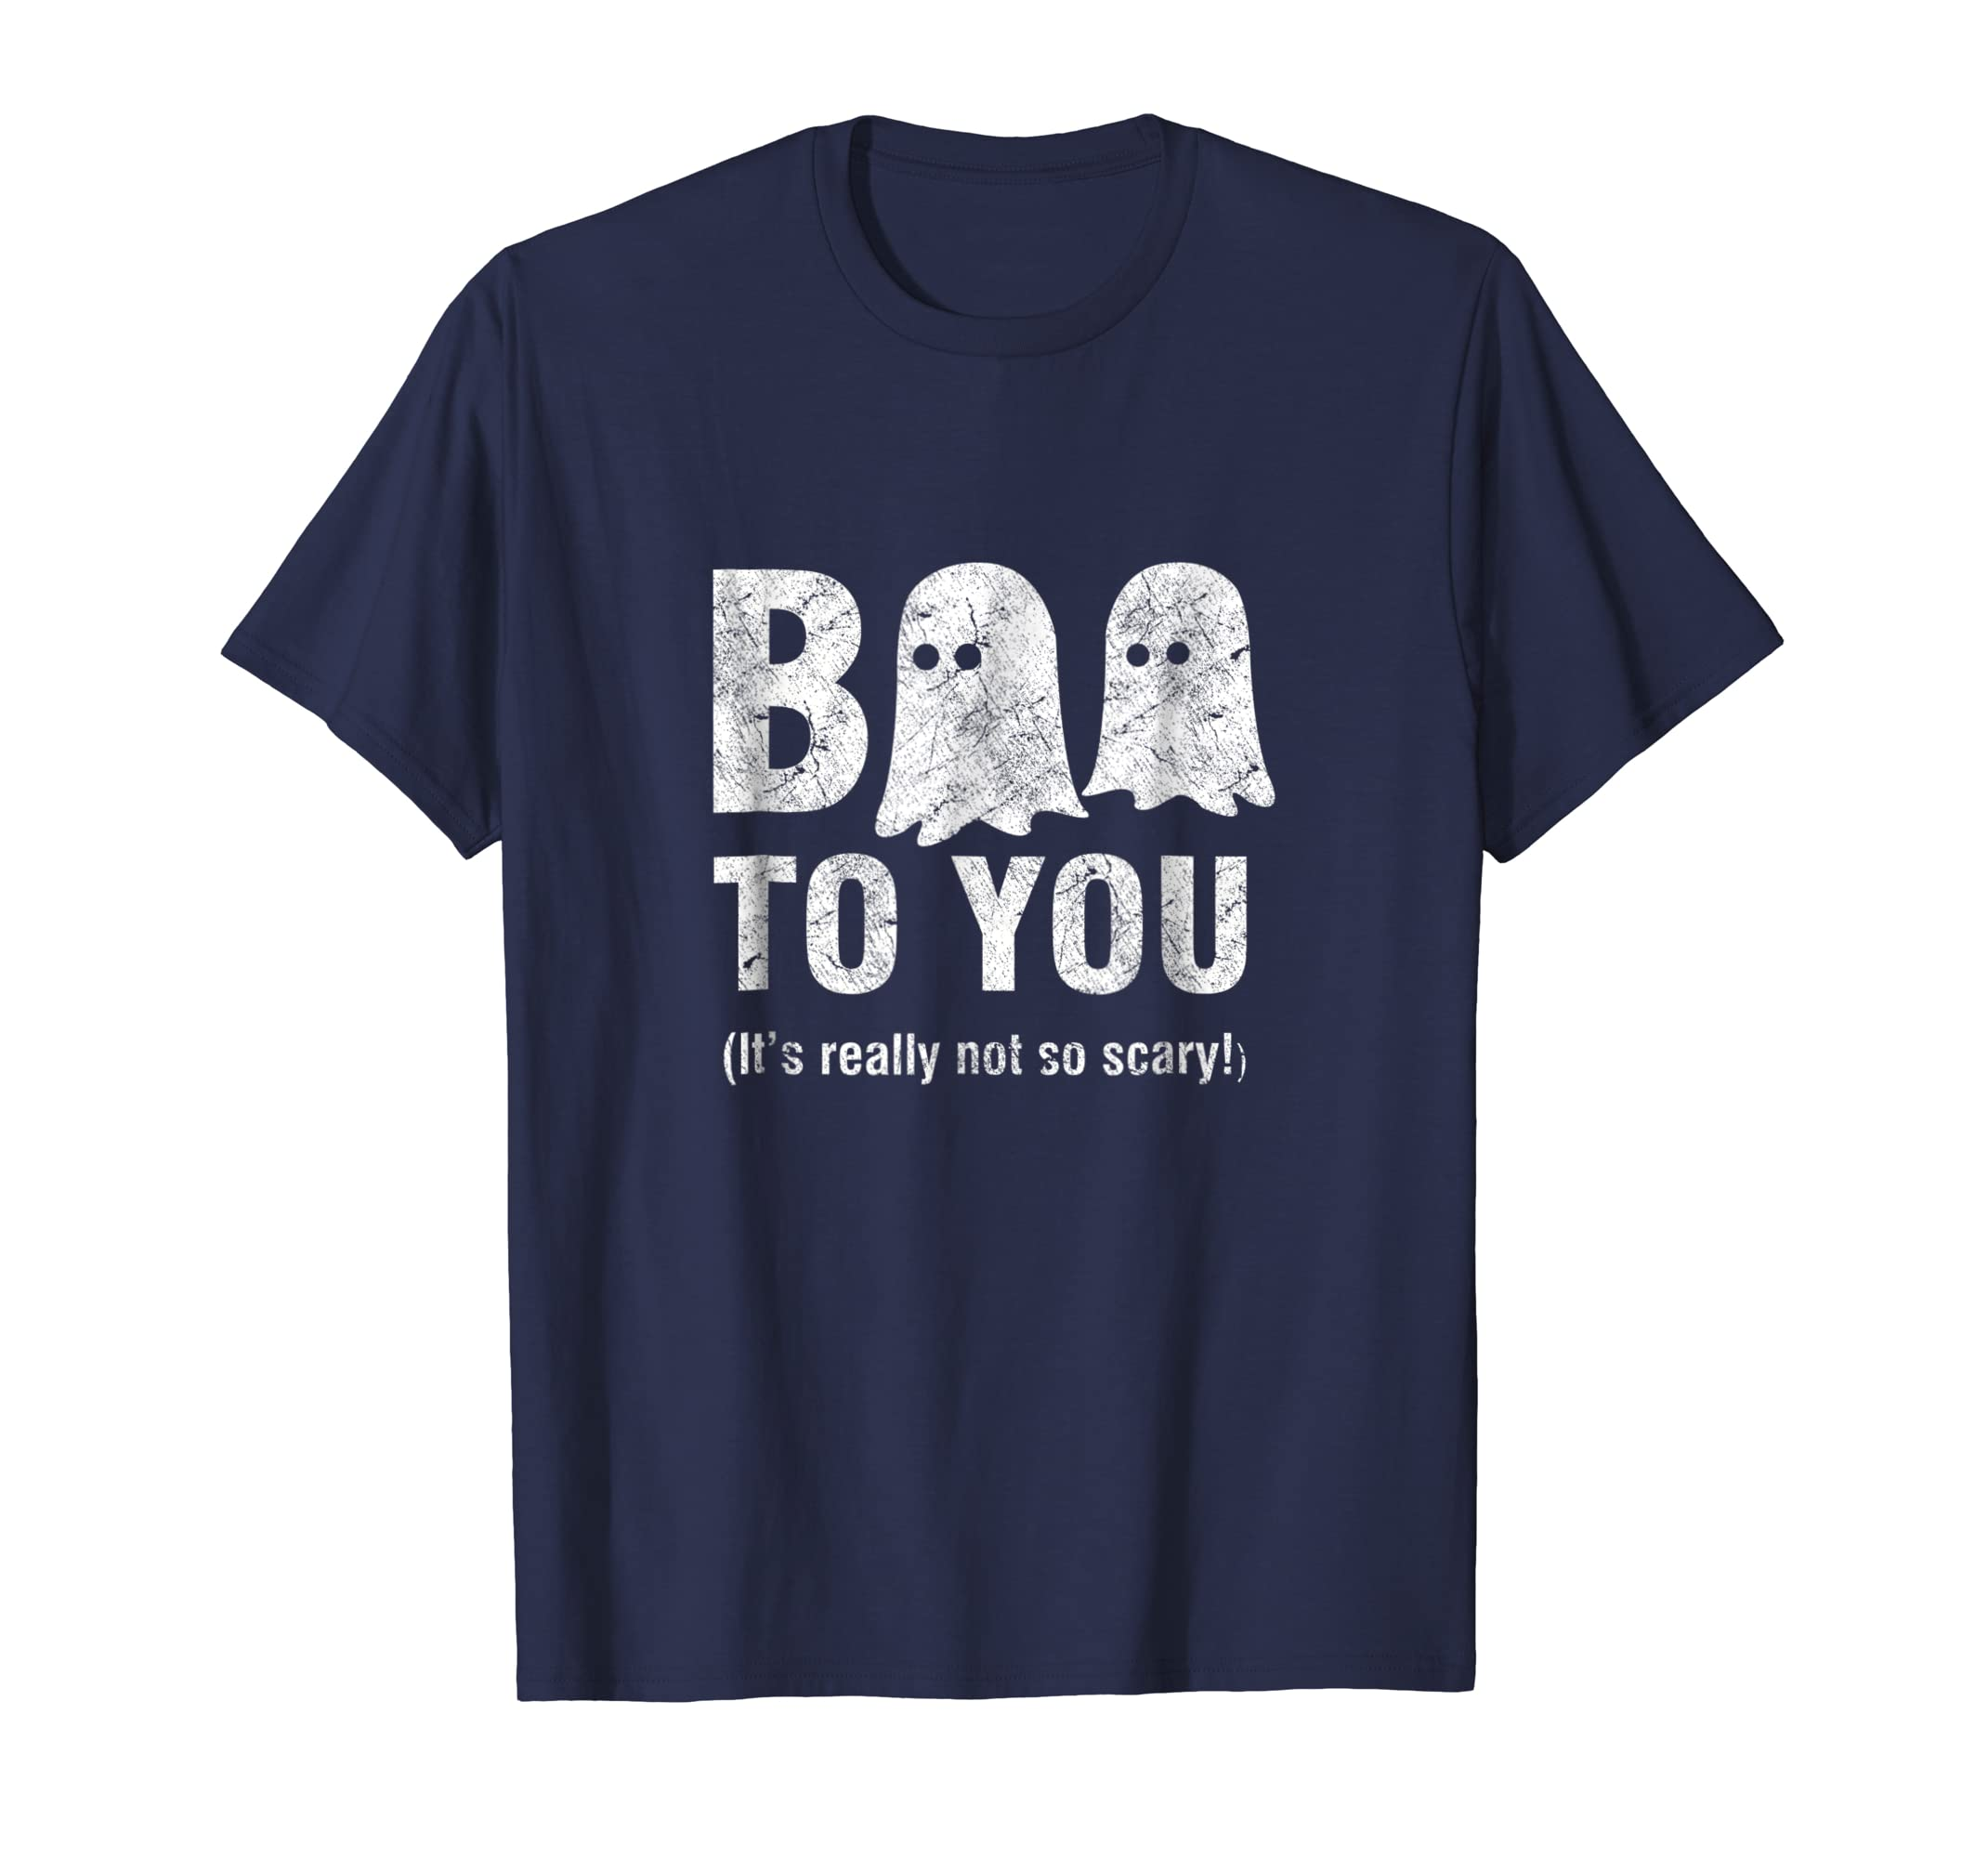 Boo To You T-Shirt It's Really Not So Scary! Shirt-ANZ